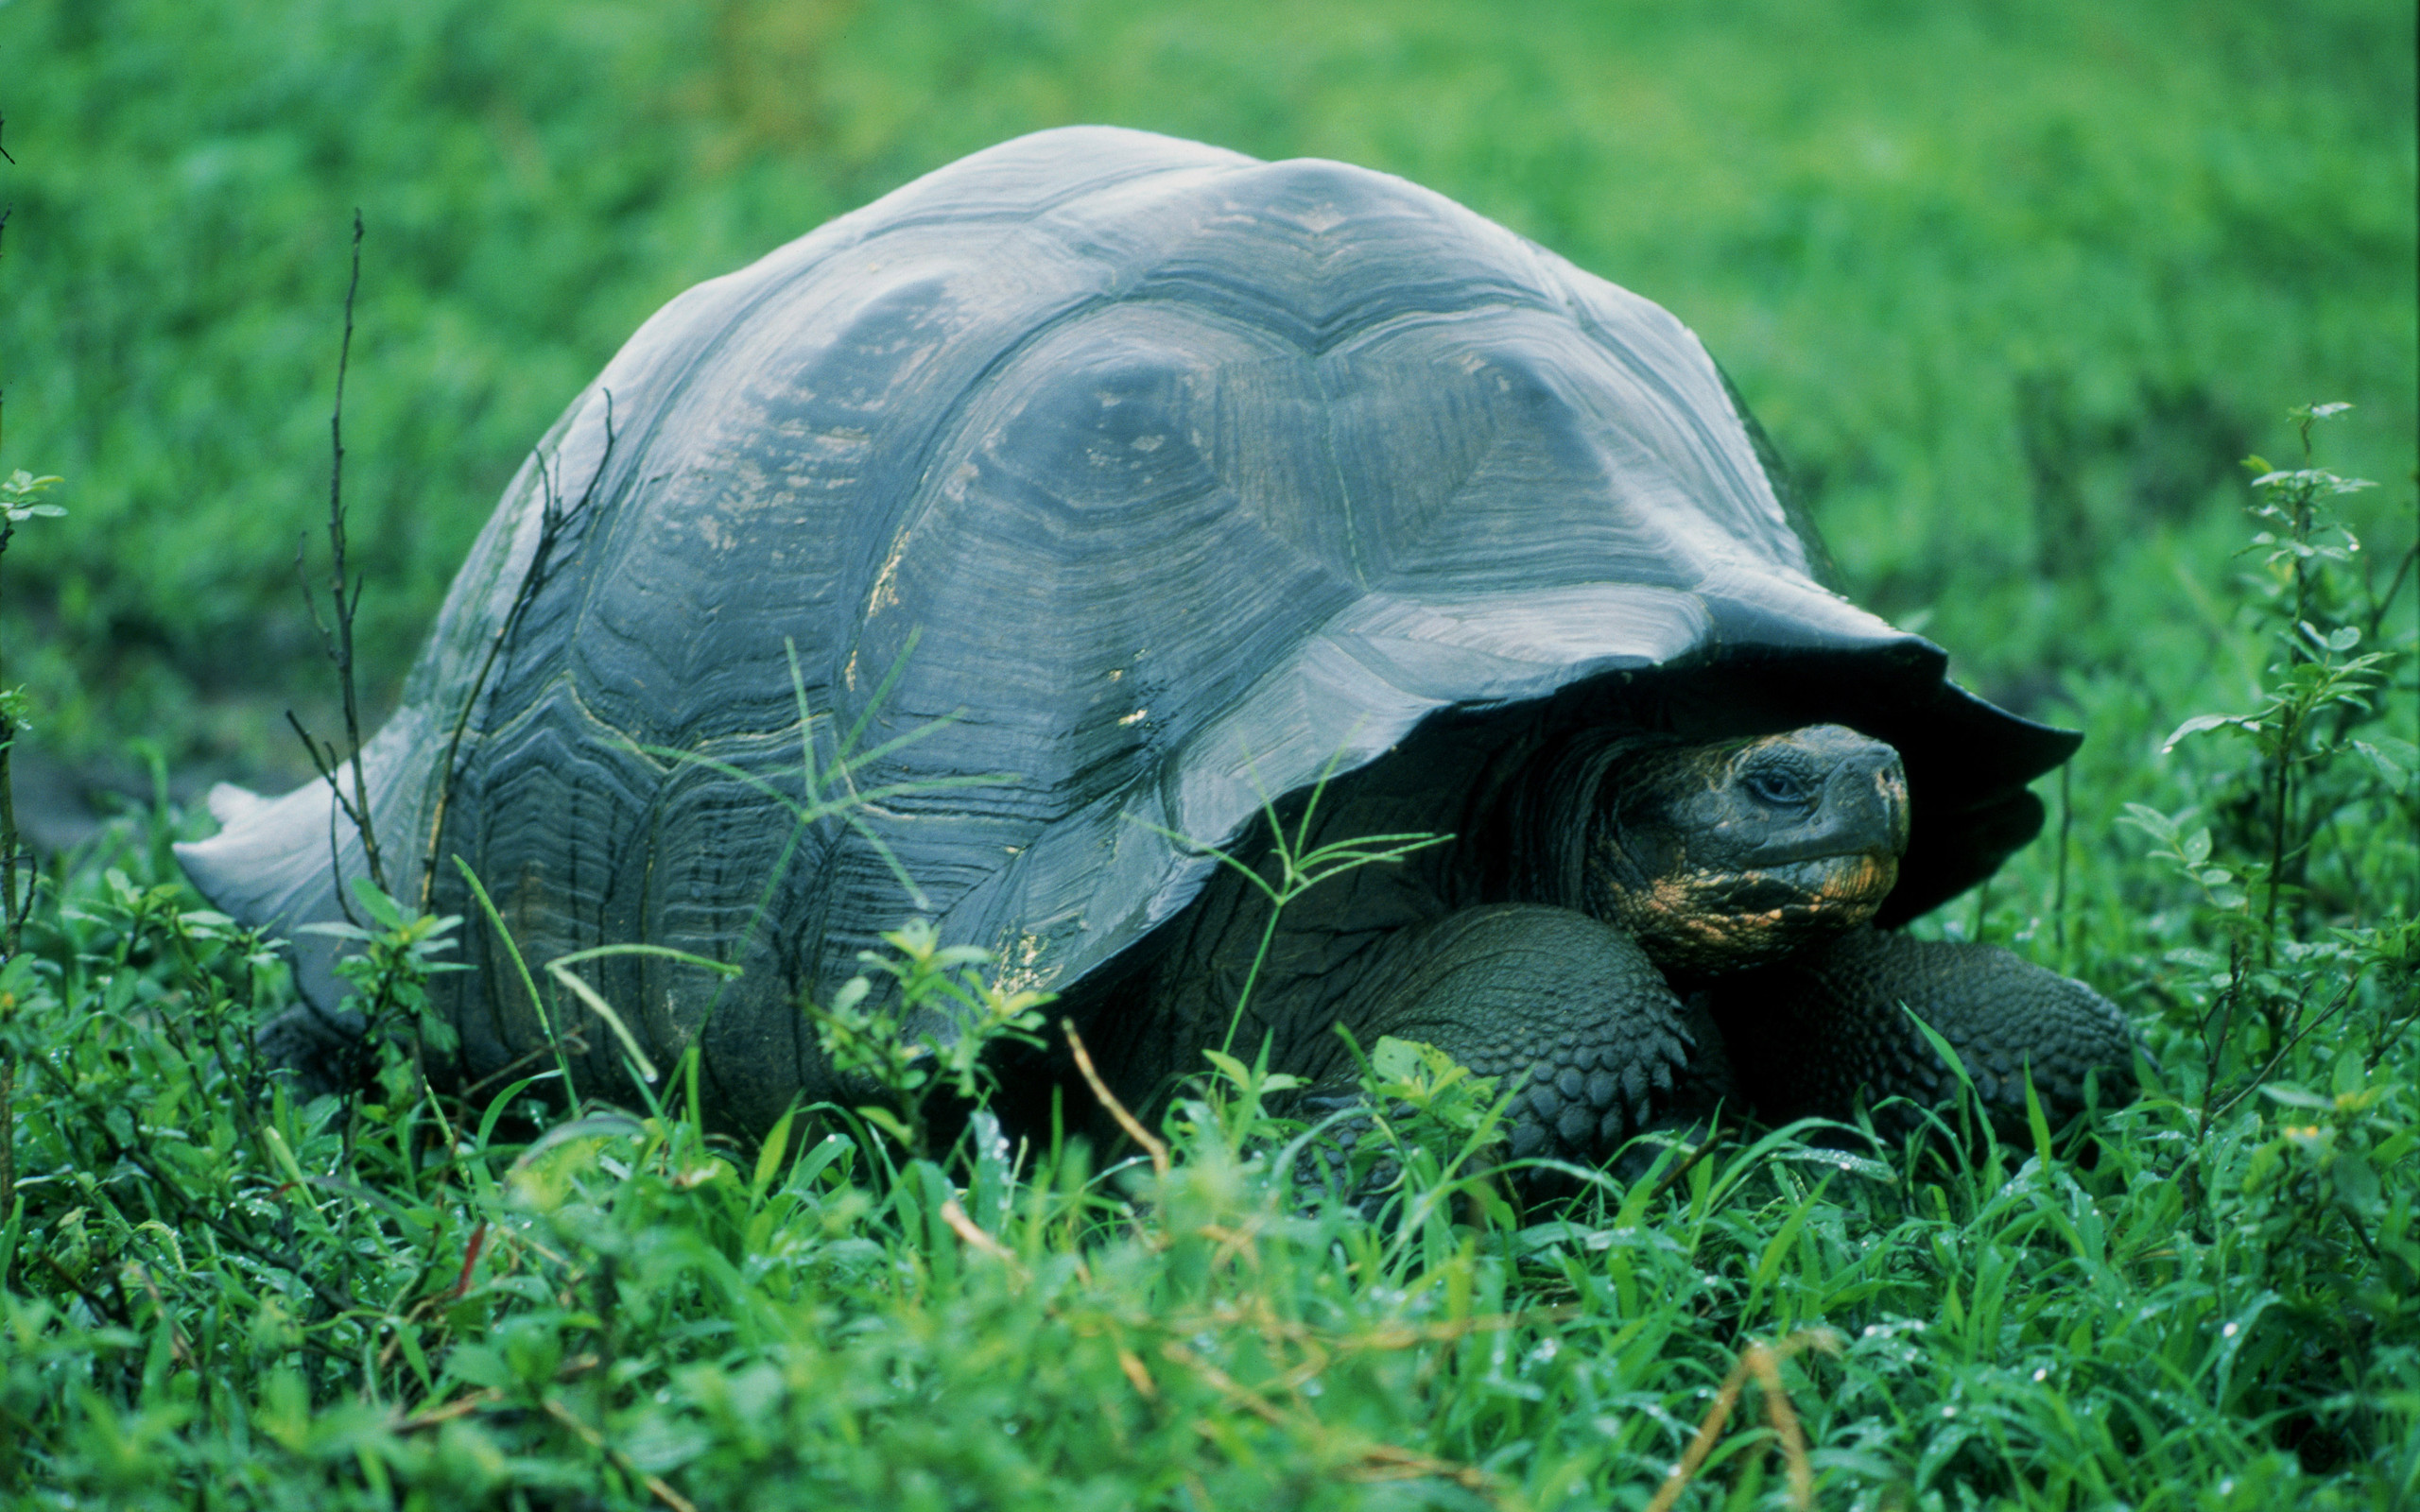 Funny 3d Animal Turtle Wallpapers Hd: I Like Turtles Wallpaper